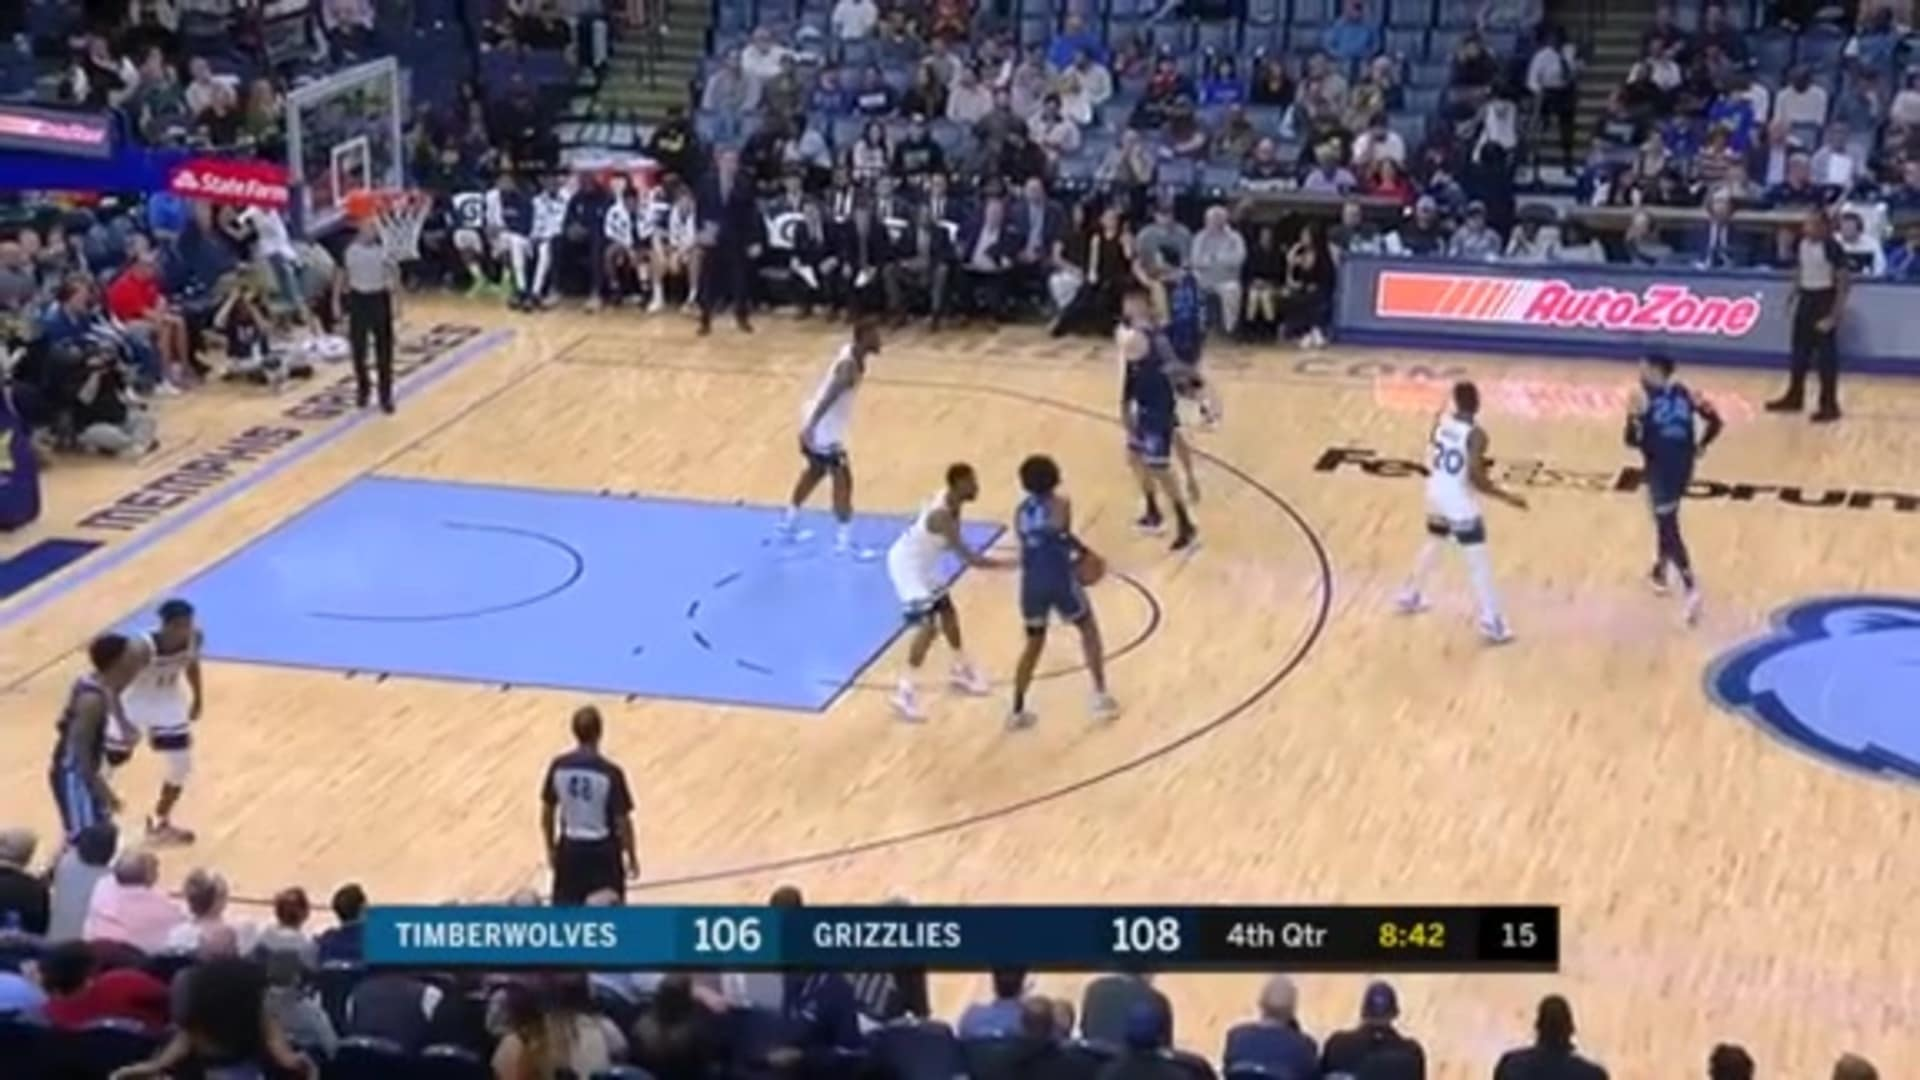 Grizzlies vs. Timberwolves highlights 11.6.19